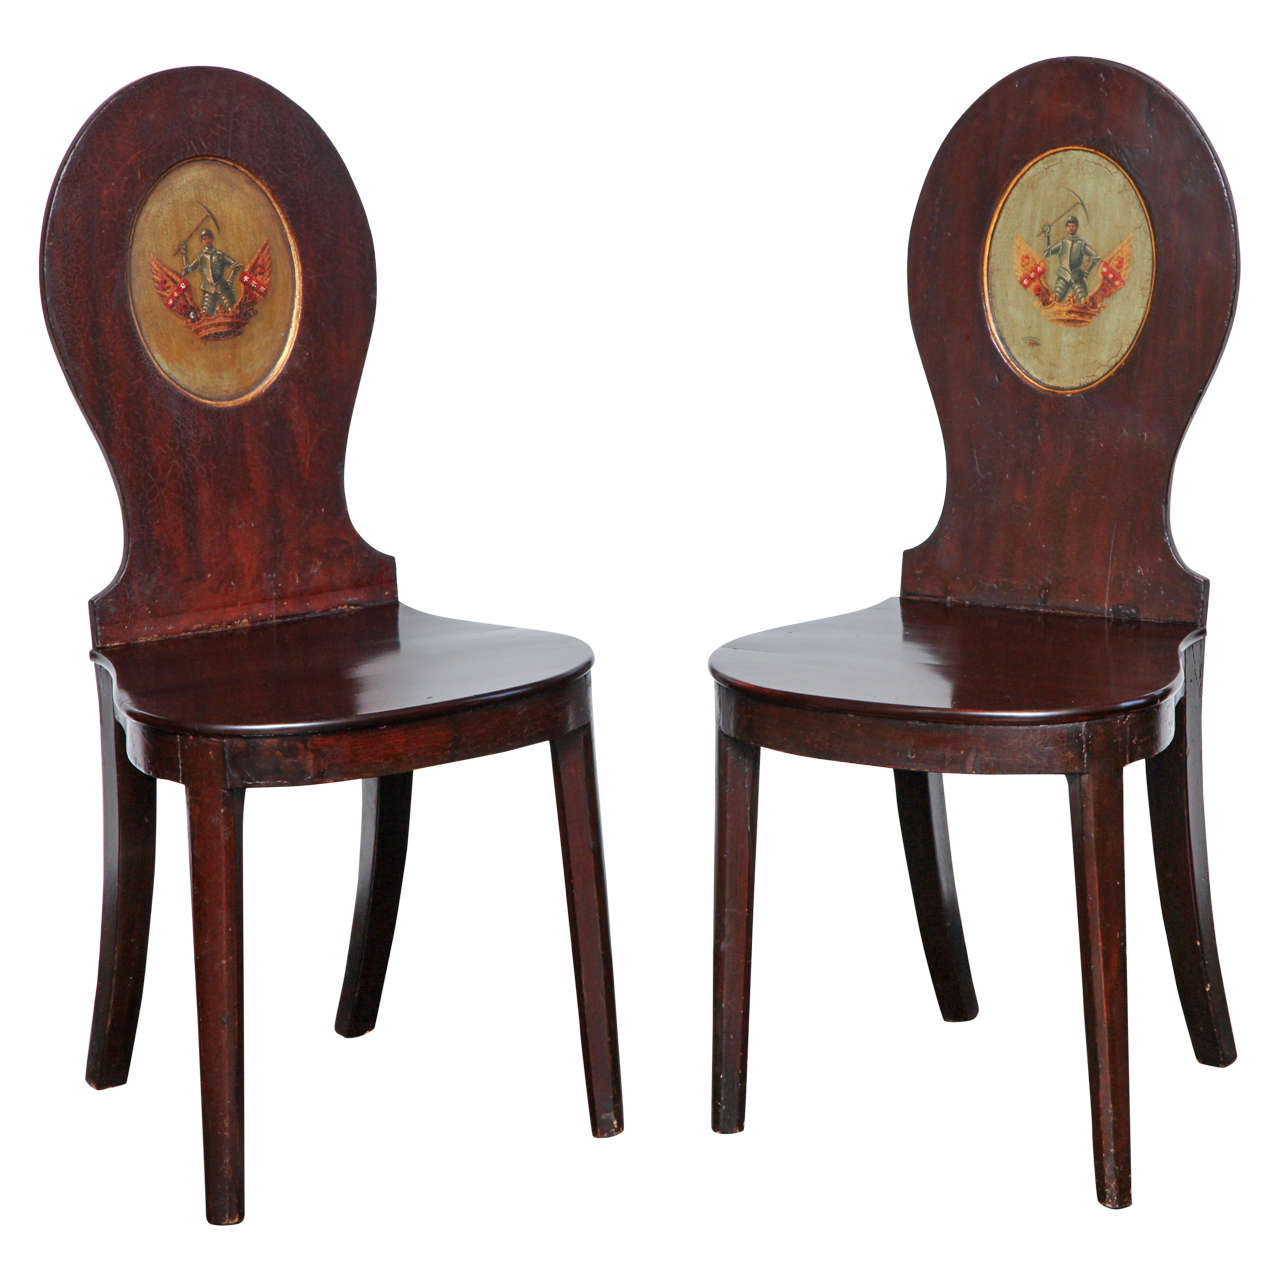 Superbe Pair Of Early 19th Century, English Regency, Mahogany Hall Chairs For Sale